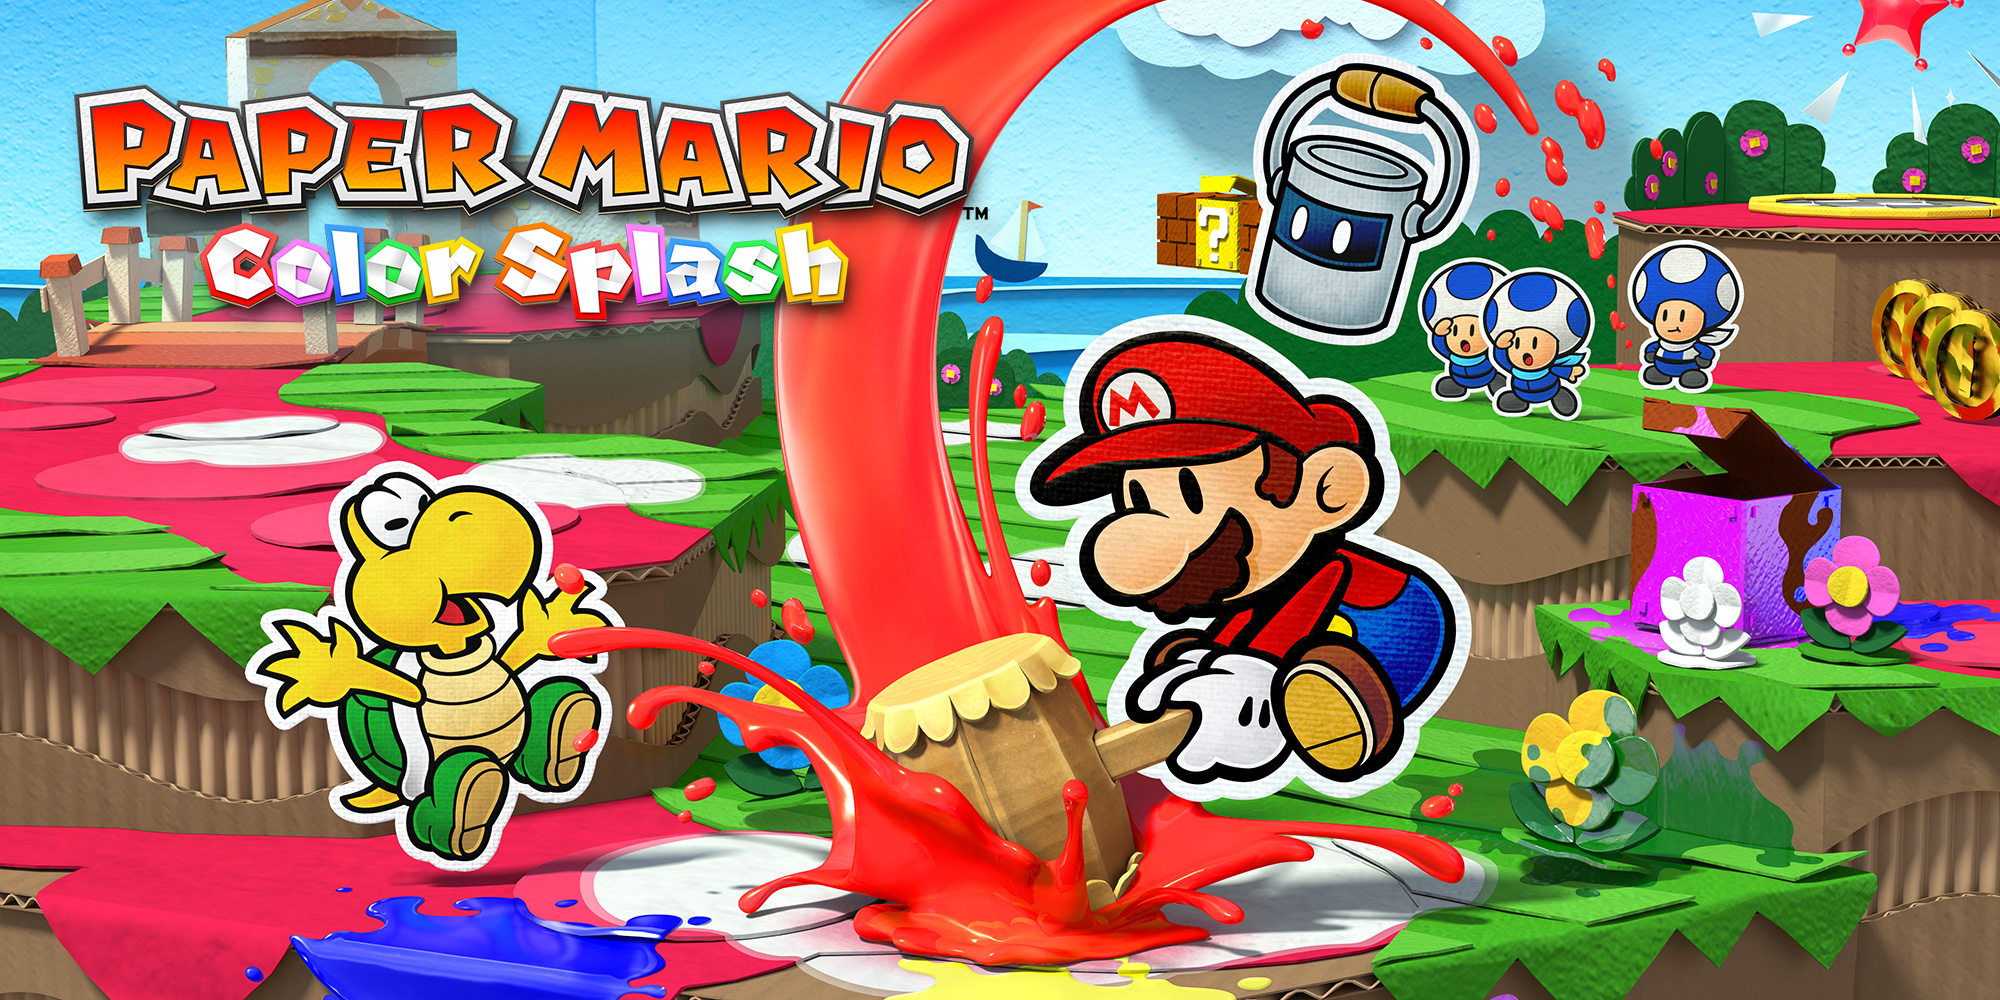 Brandneues zu Paper Mario: Color Splash auf Wii U!